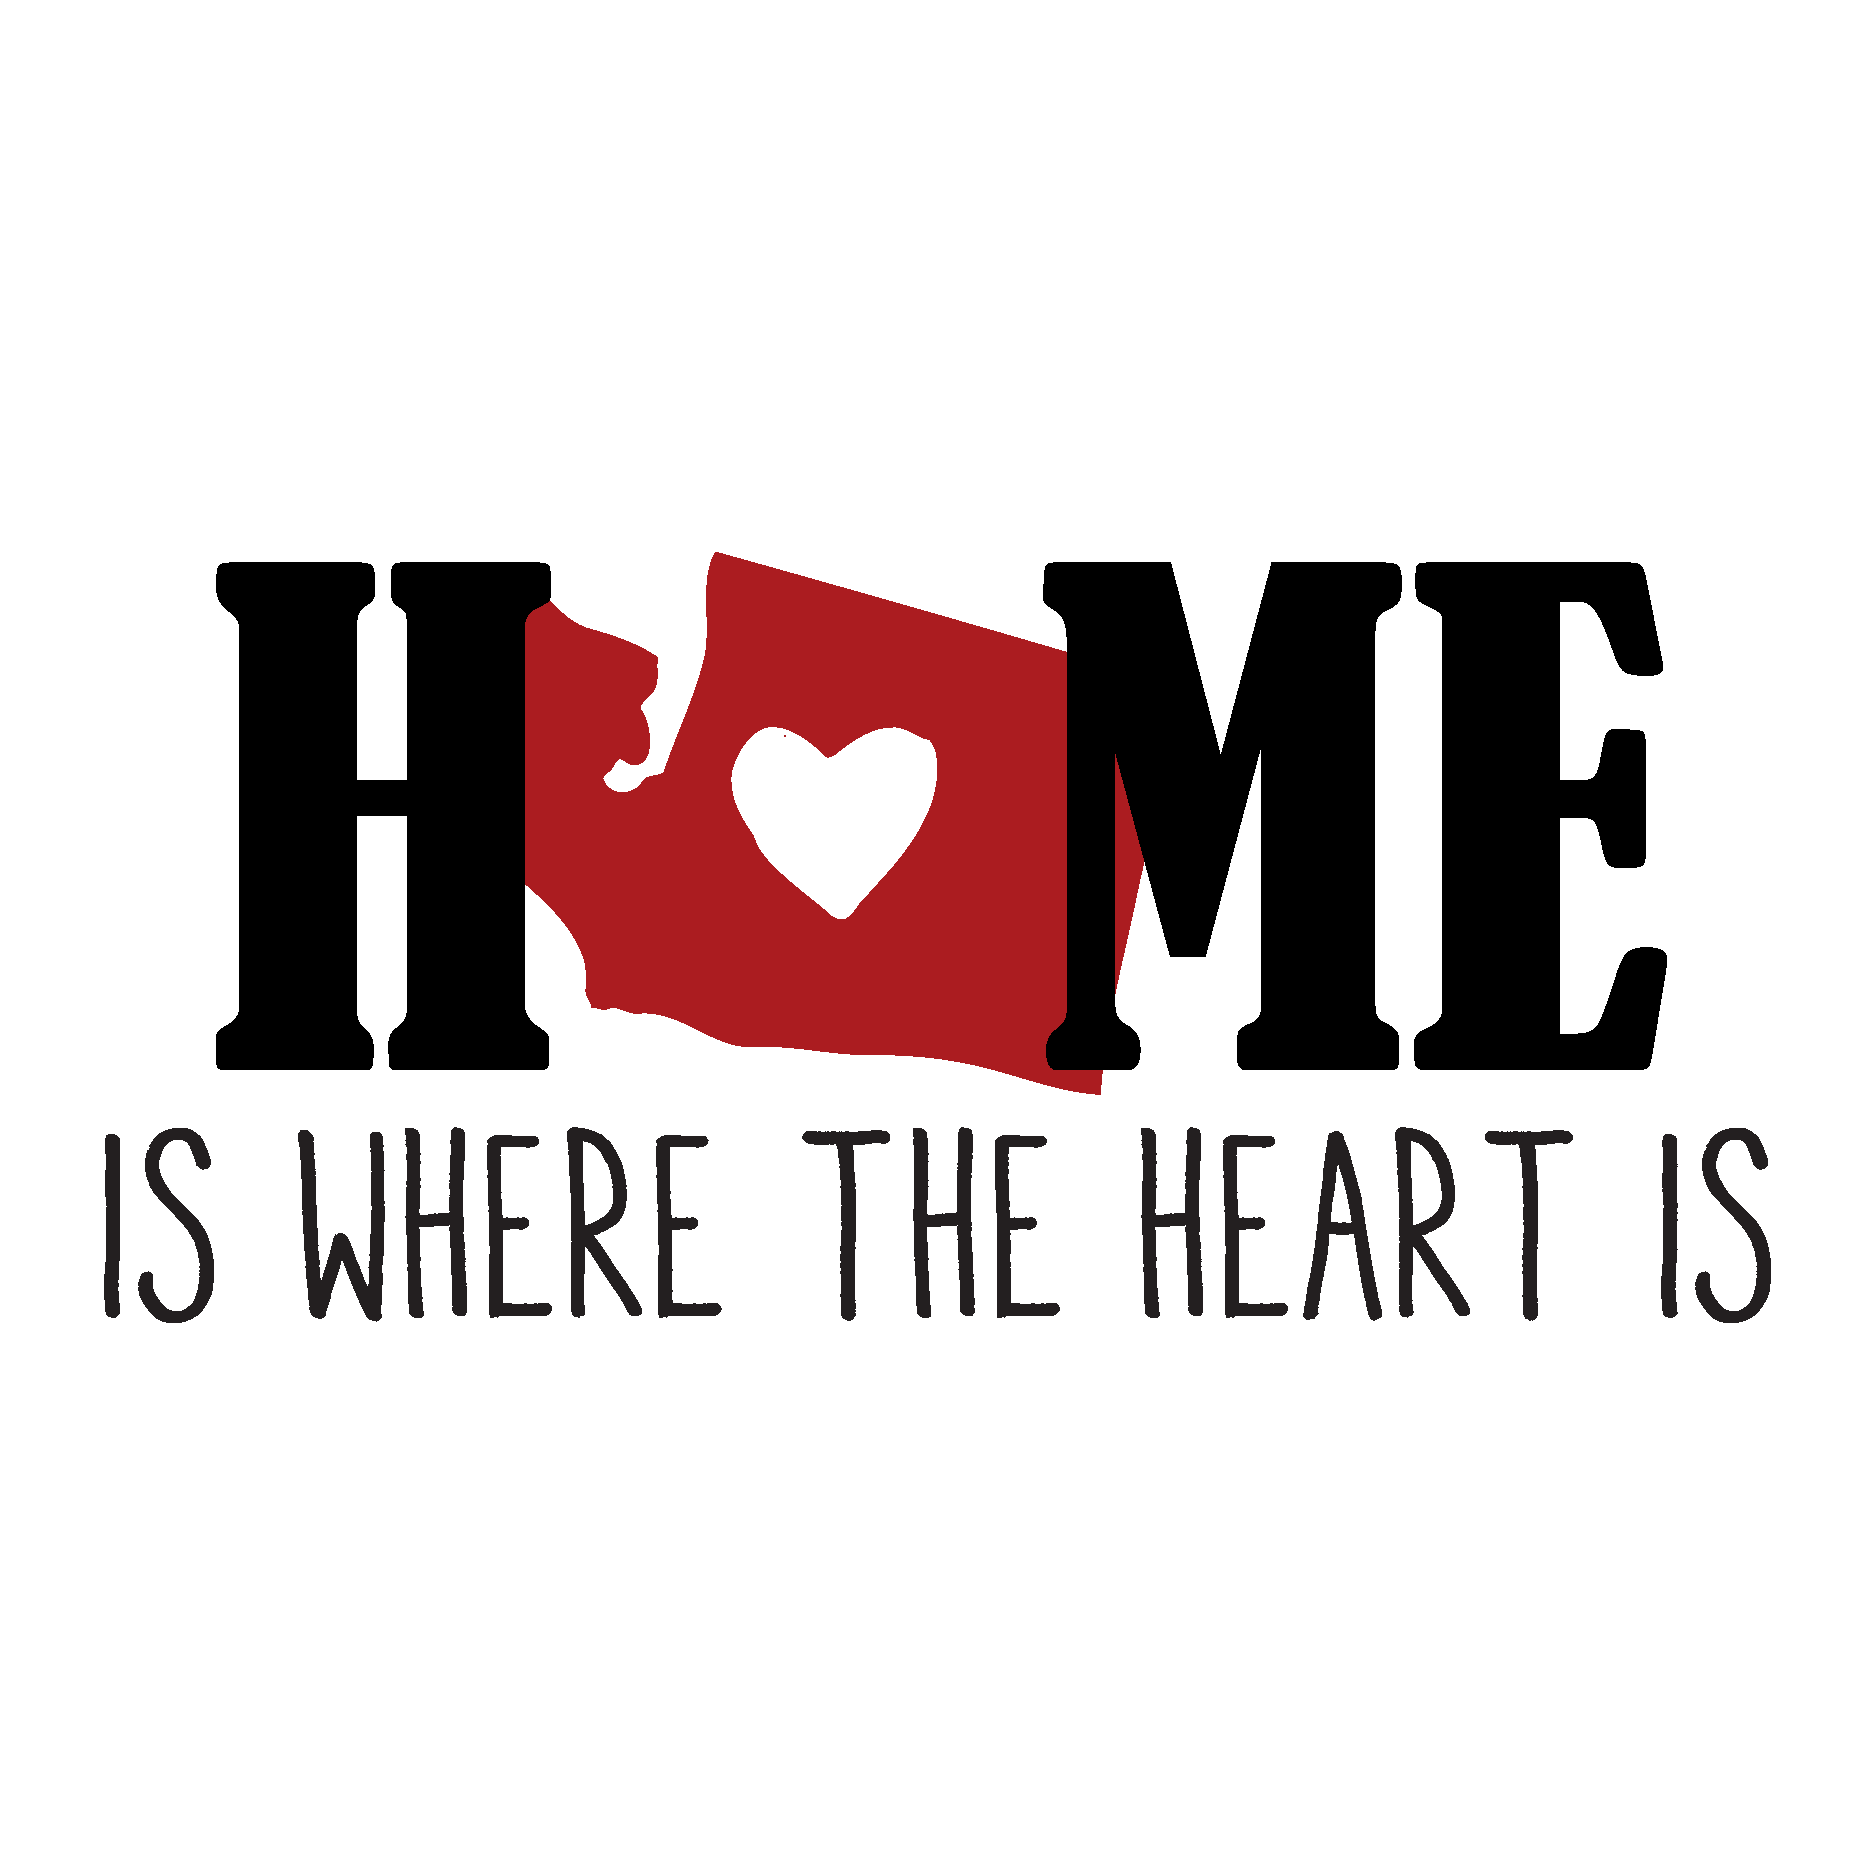 Home Is Where The Heart Is Quote Home Is Where The Heart Is Wall Quotes™ Decal  Wallquotes